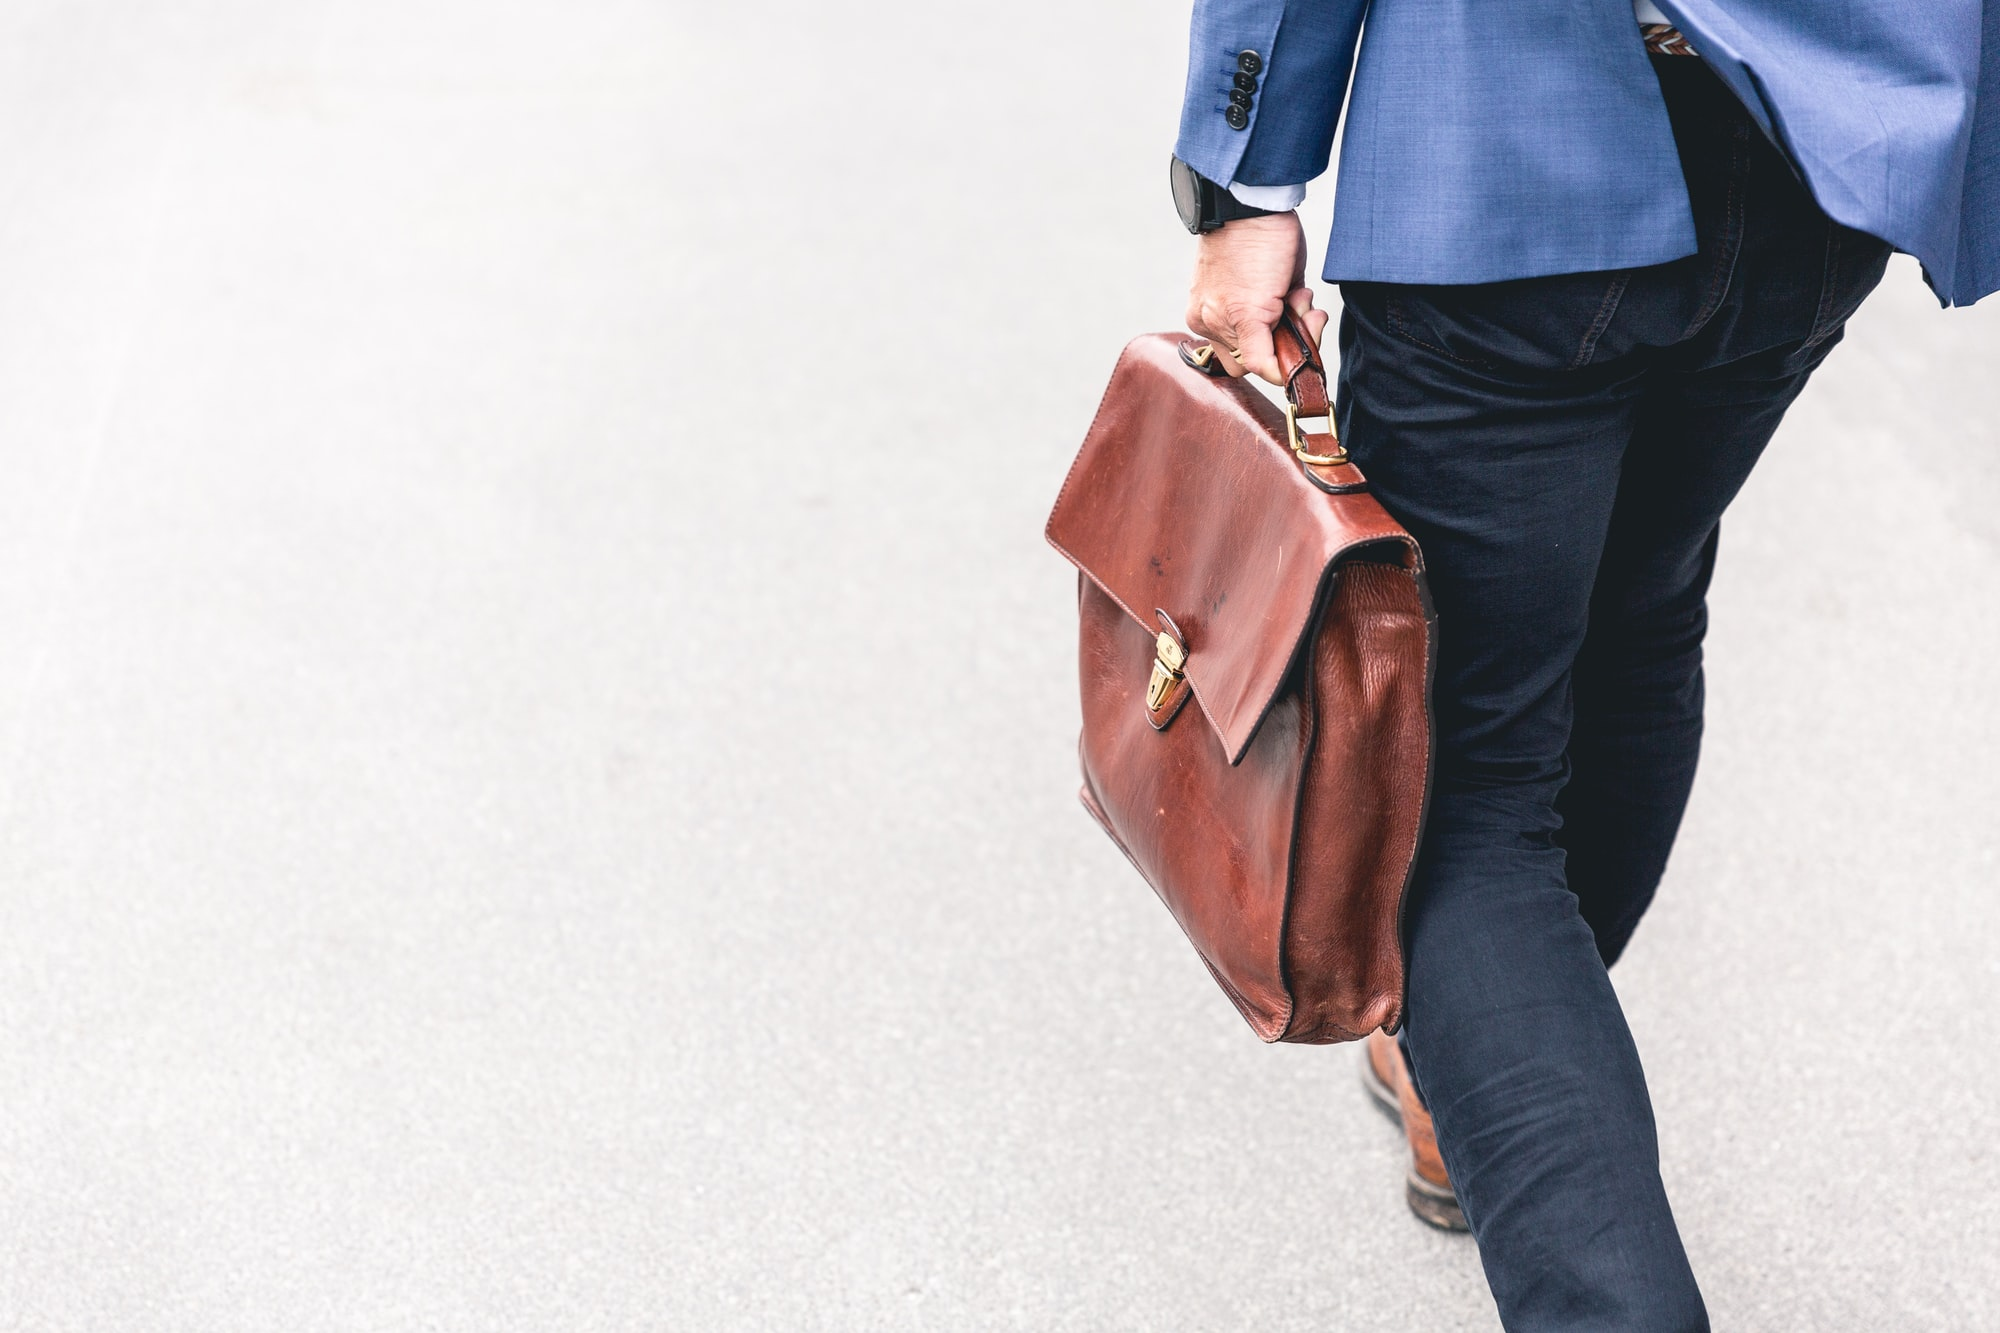 How To Know When it's Time To Switch Jobs